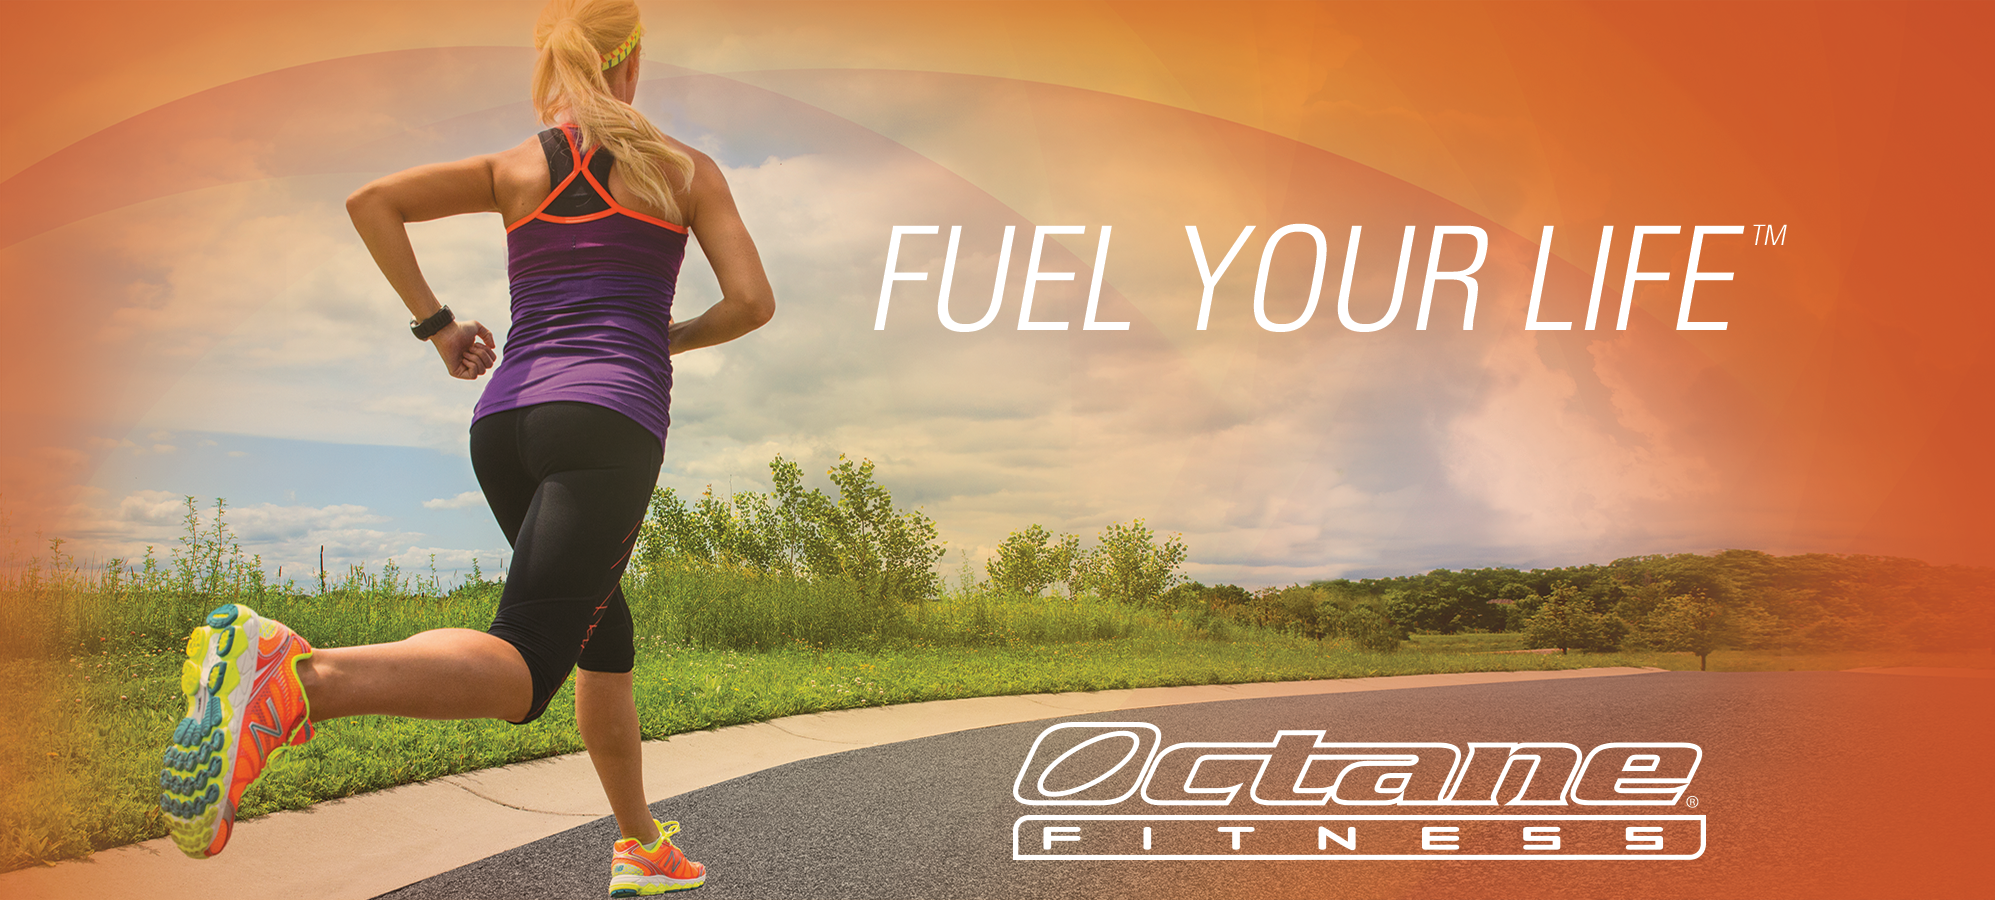 Octane Fitness Ellipticals Fuel your life